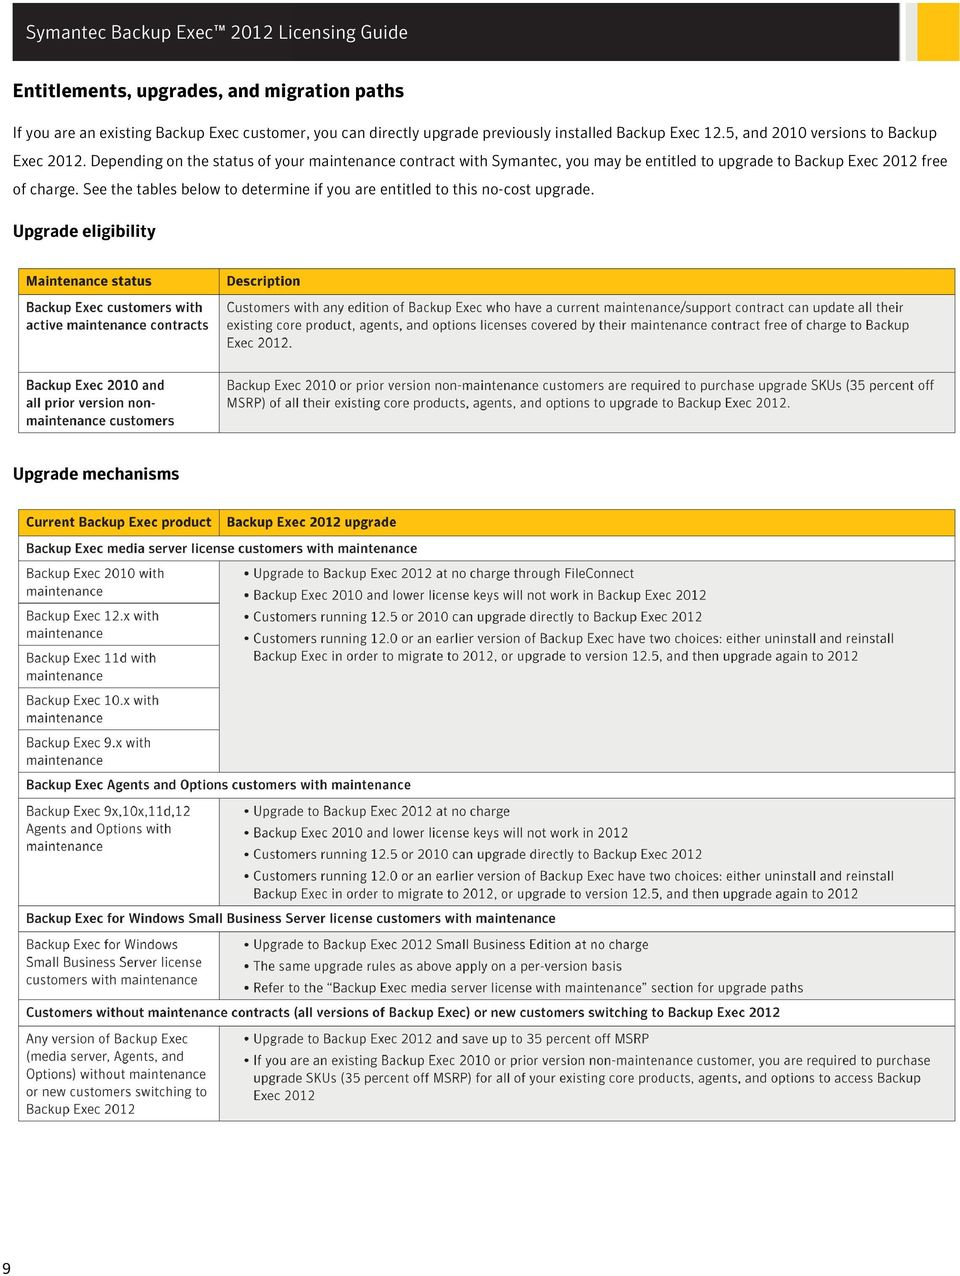 Depending on the status of your maintenance contract with Symantec, you may be entitled to upgrade to Backup Exec 2012 free